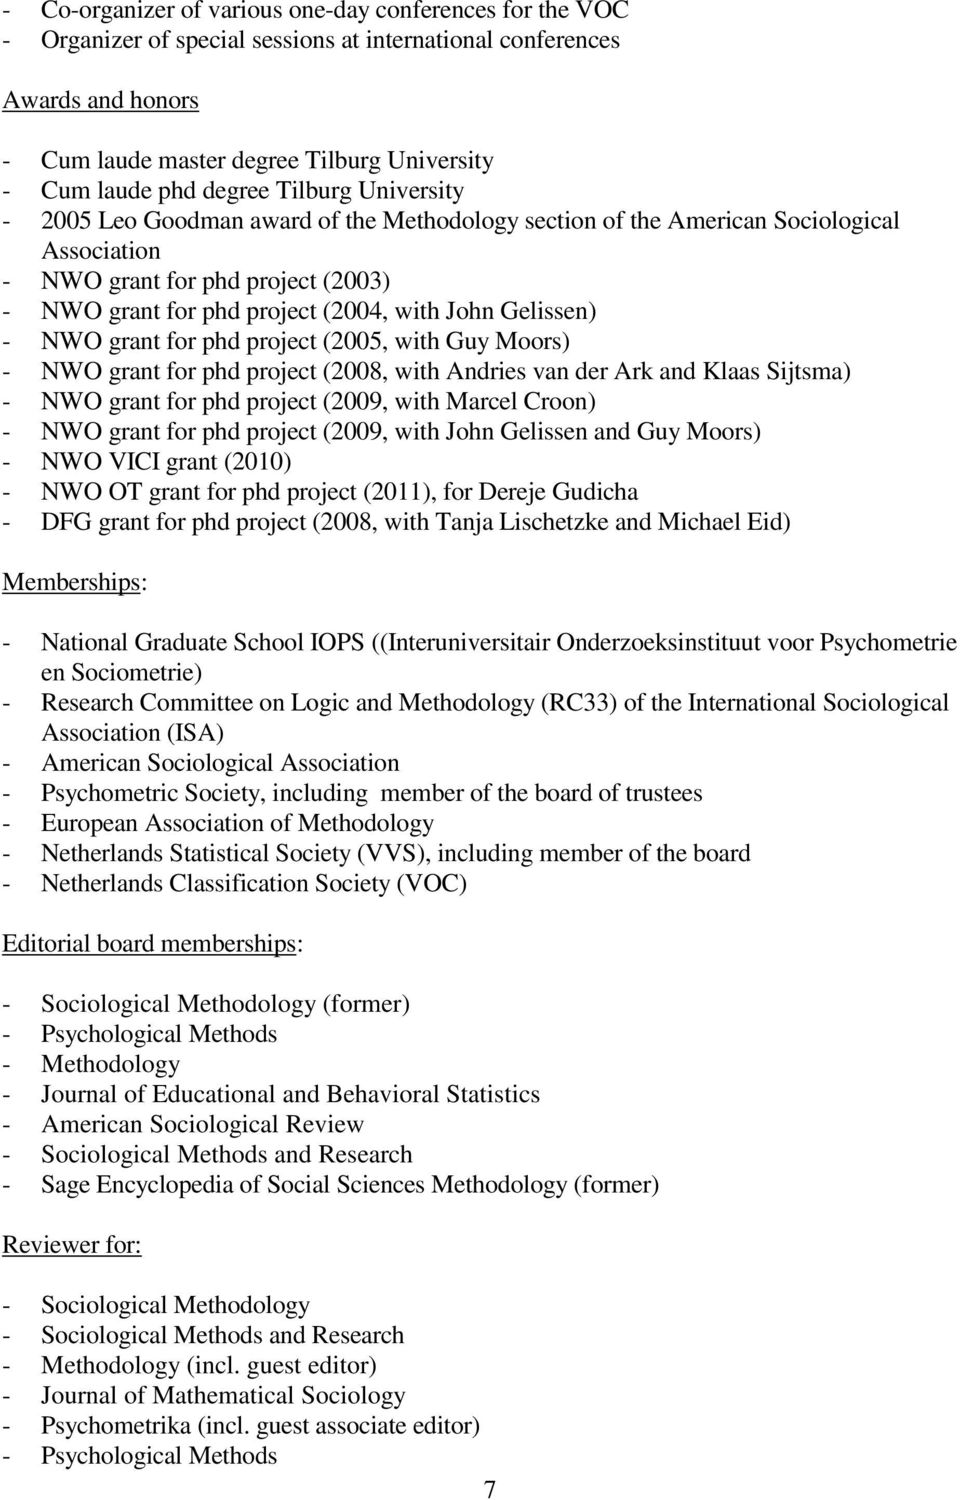 Gelissen) - NWO grant for phd project (2005, with Guy Moors) - NWO grant for phd project (2008, with Andries van der Ark and Klaas Sijtsma) - NWO grant for phd project (2009, with Marcel Croon) - NWO